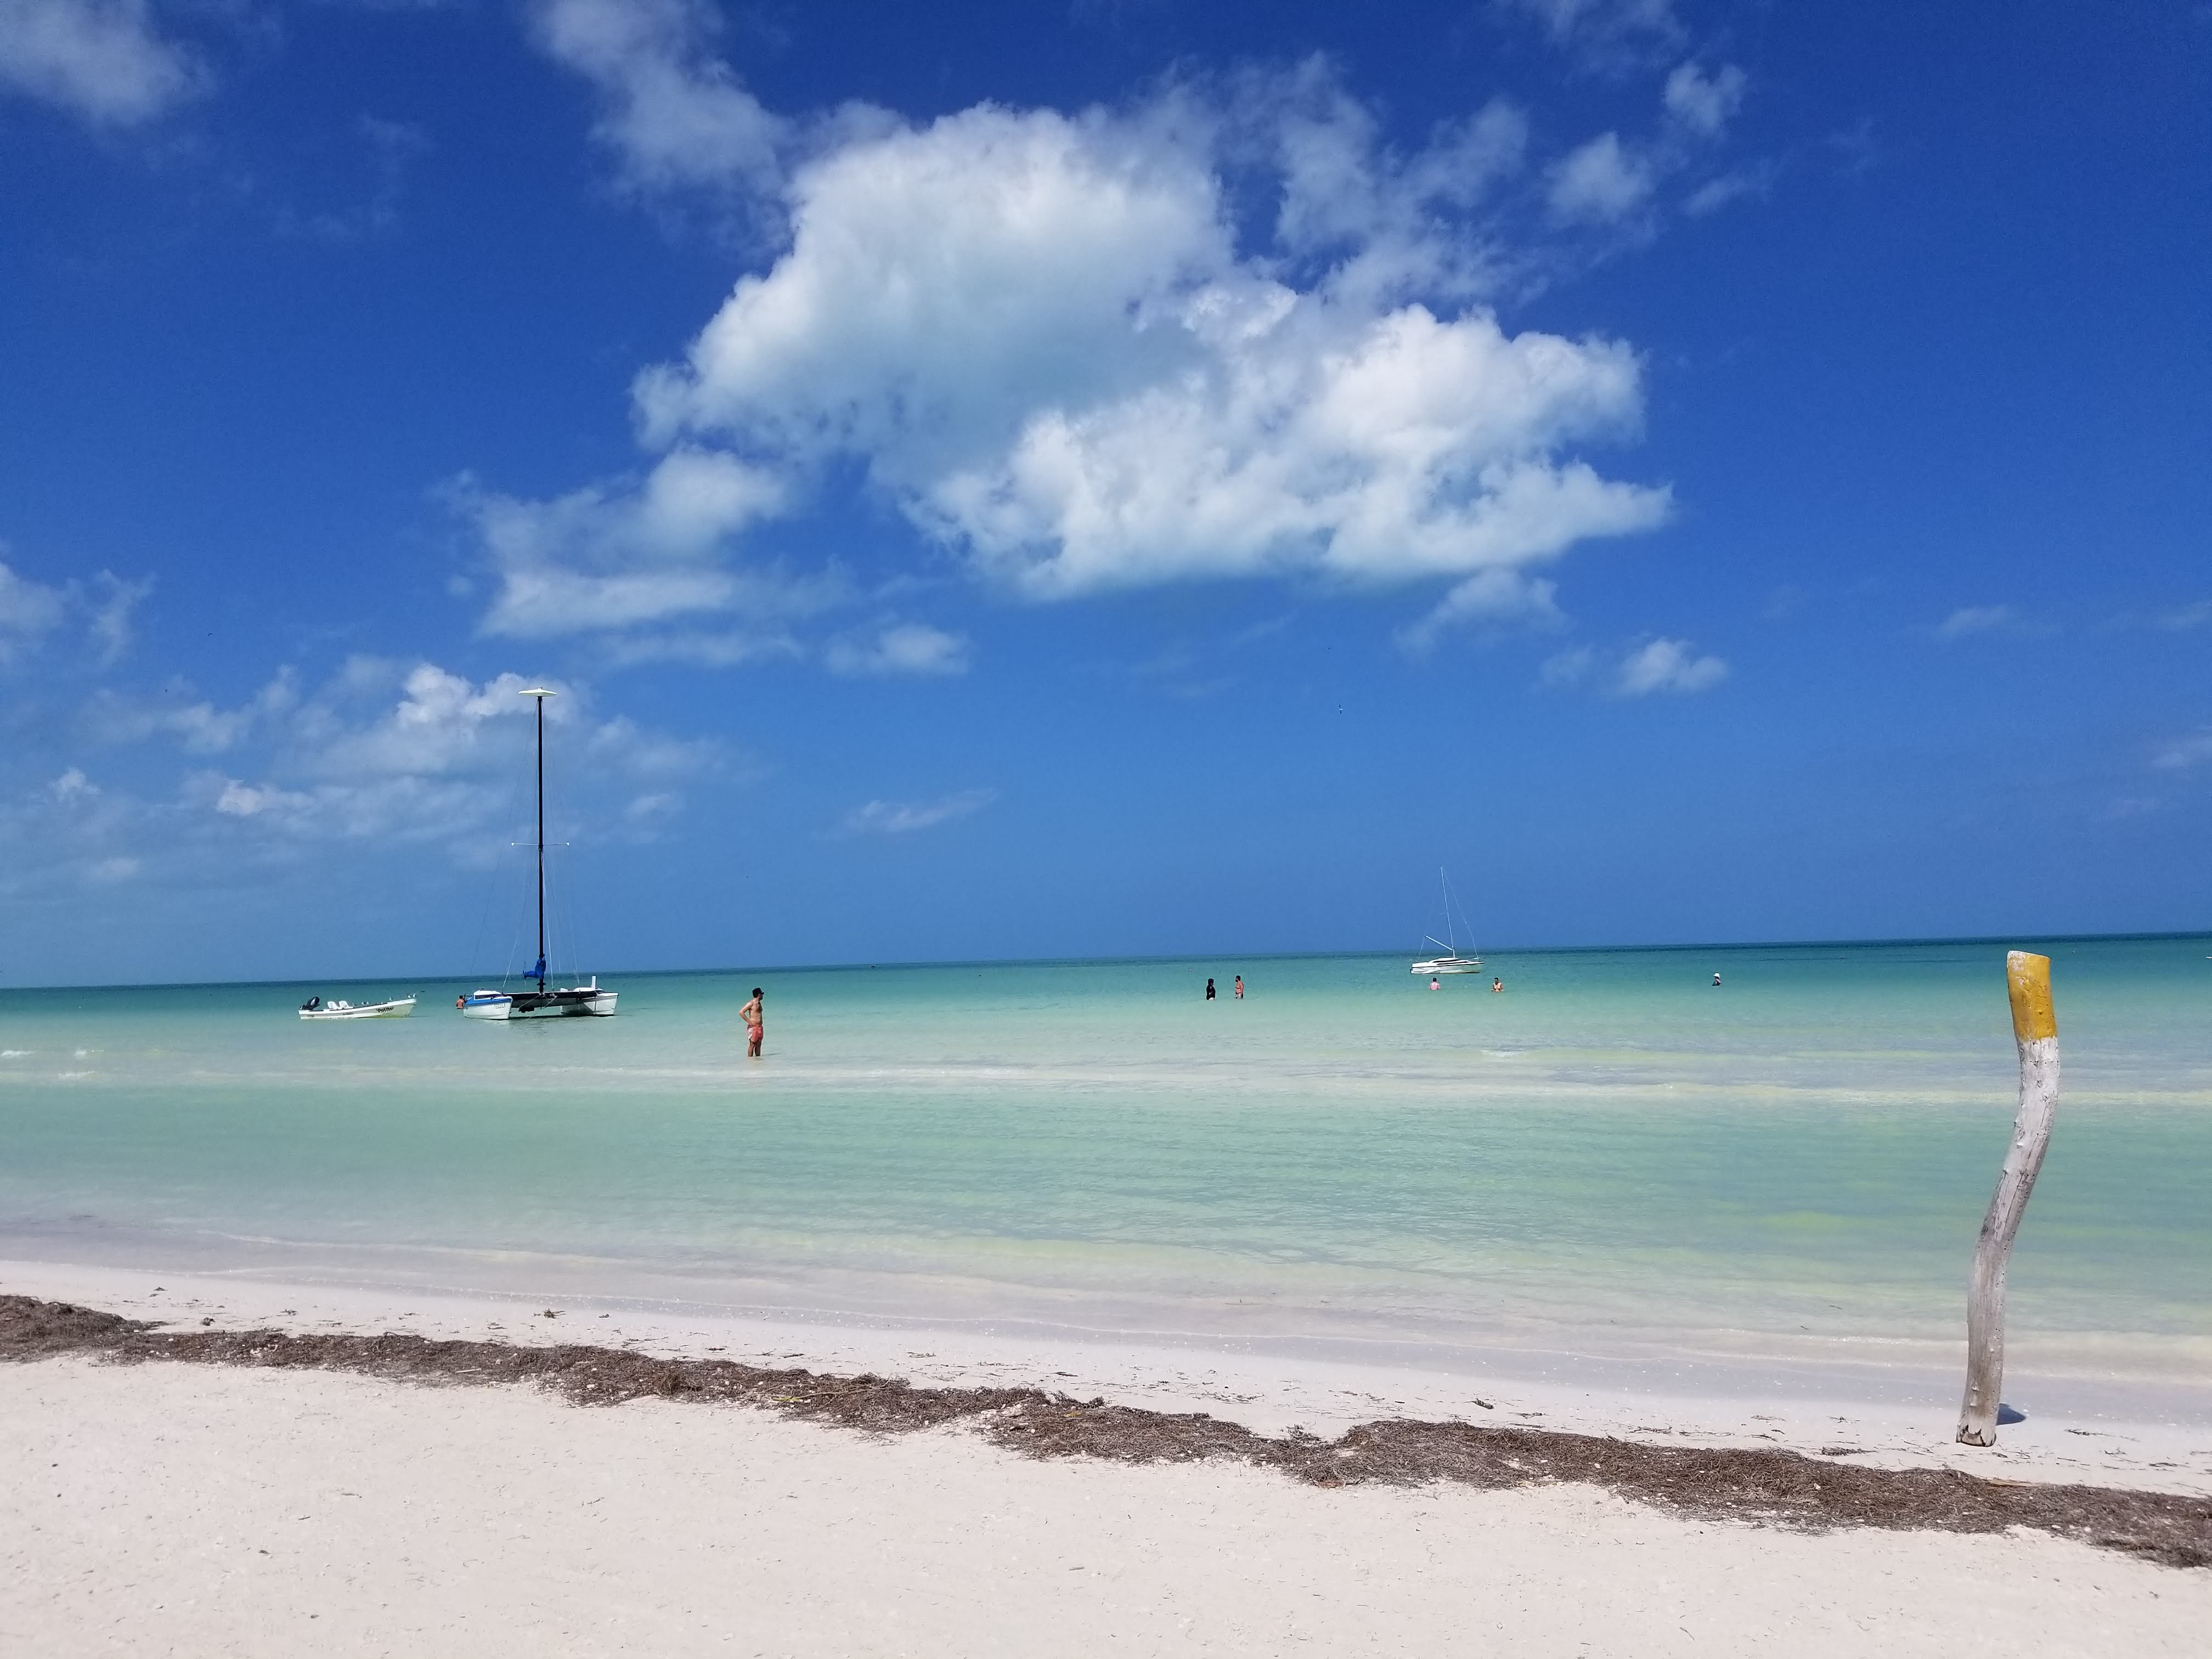 a beautiful beach view. the ocean goes all the way to the horizon. there are three small sailboats on the water. the sky is peppered with clouds.